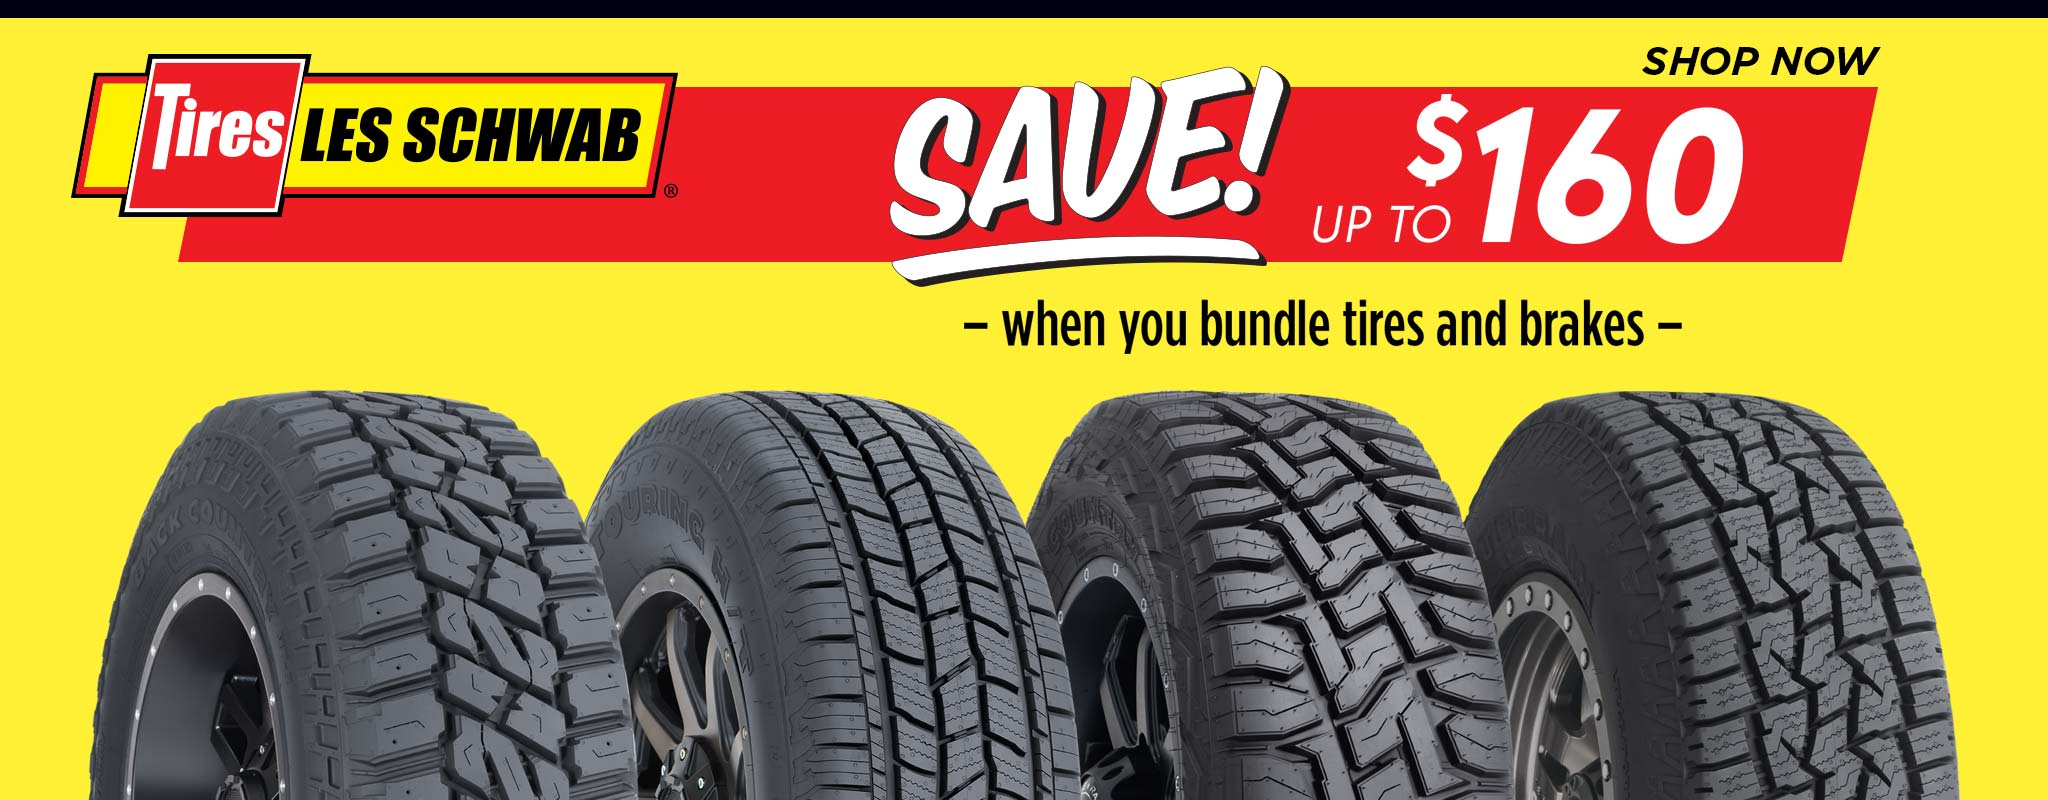 Red and ywllow background with $160 off tire and brake offer